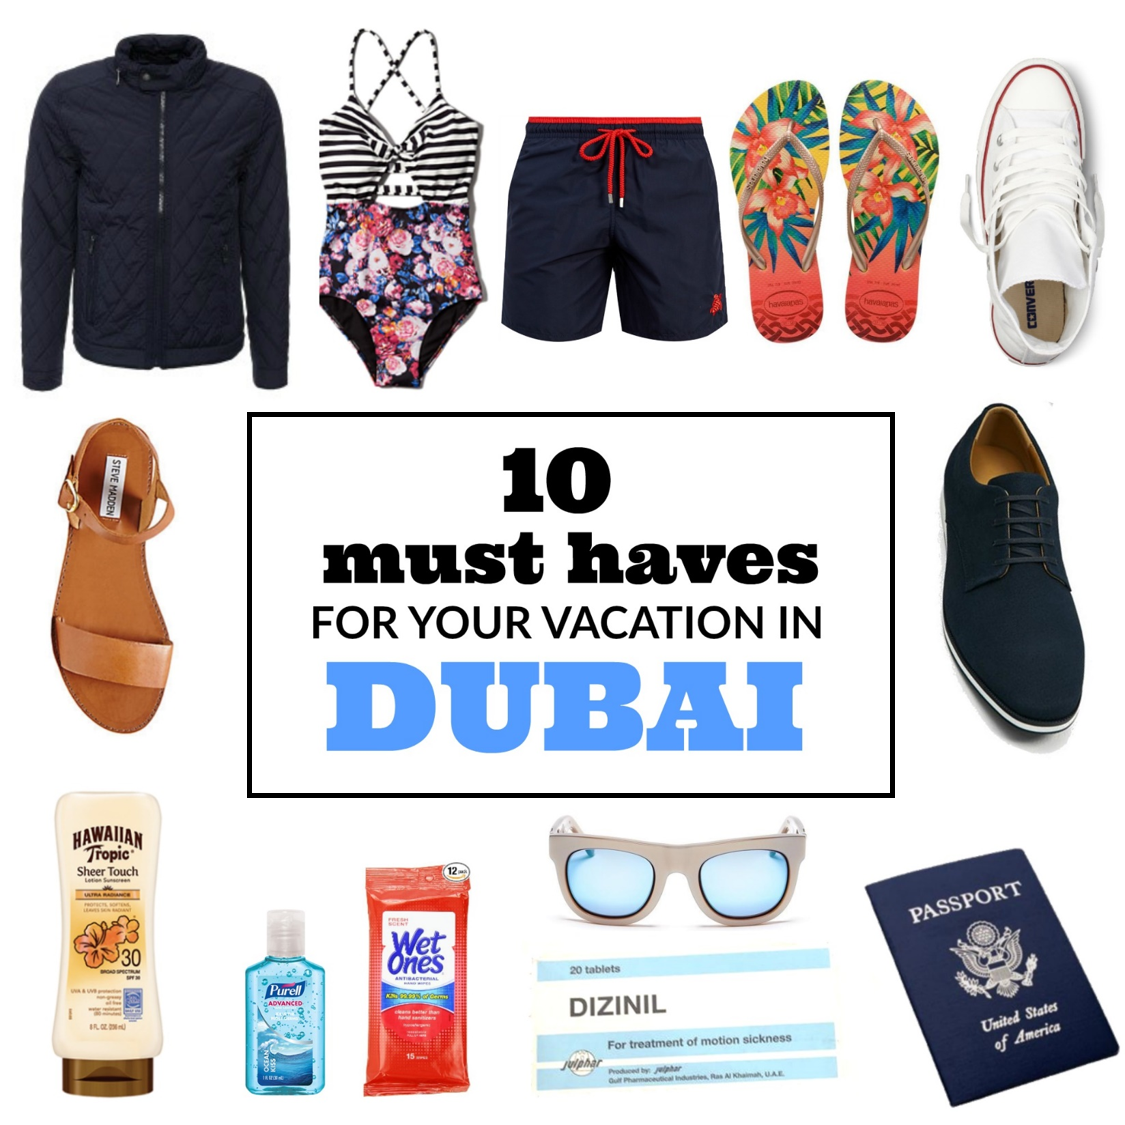 dubai travel guide - 10 Must Haves for Your Vacation in Dubai